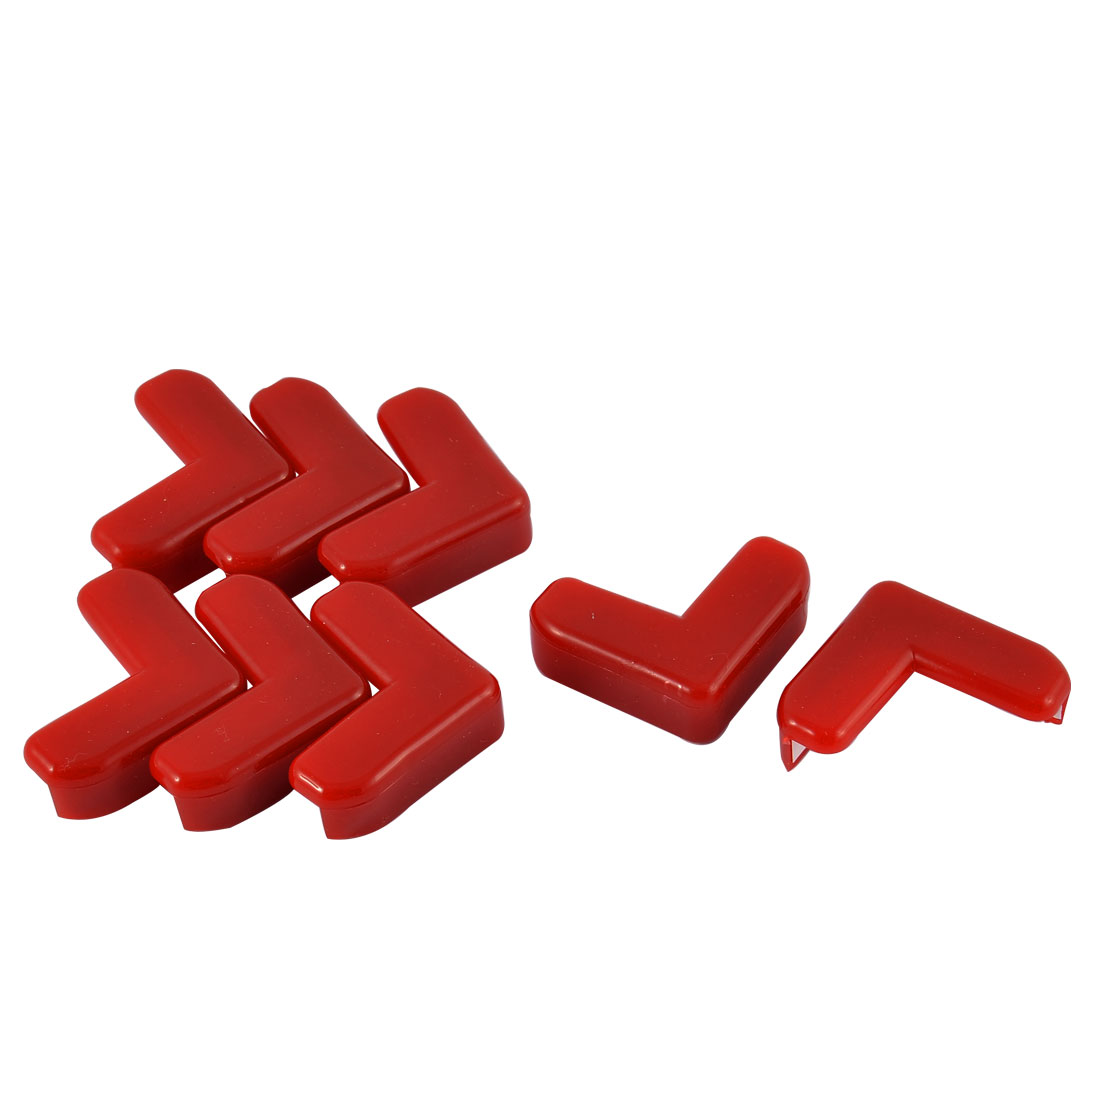 Cabinet Table Corner Rubber Cushion Cover Guard Protector Bumper Pads Red 8pcs